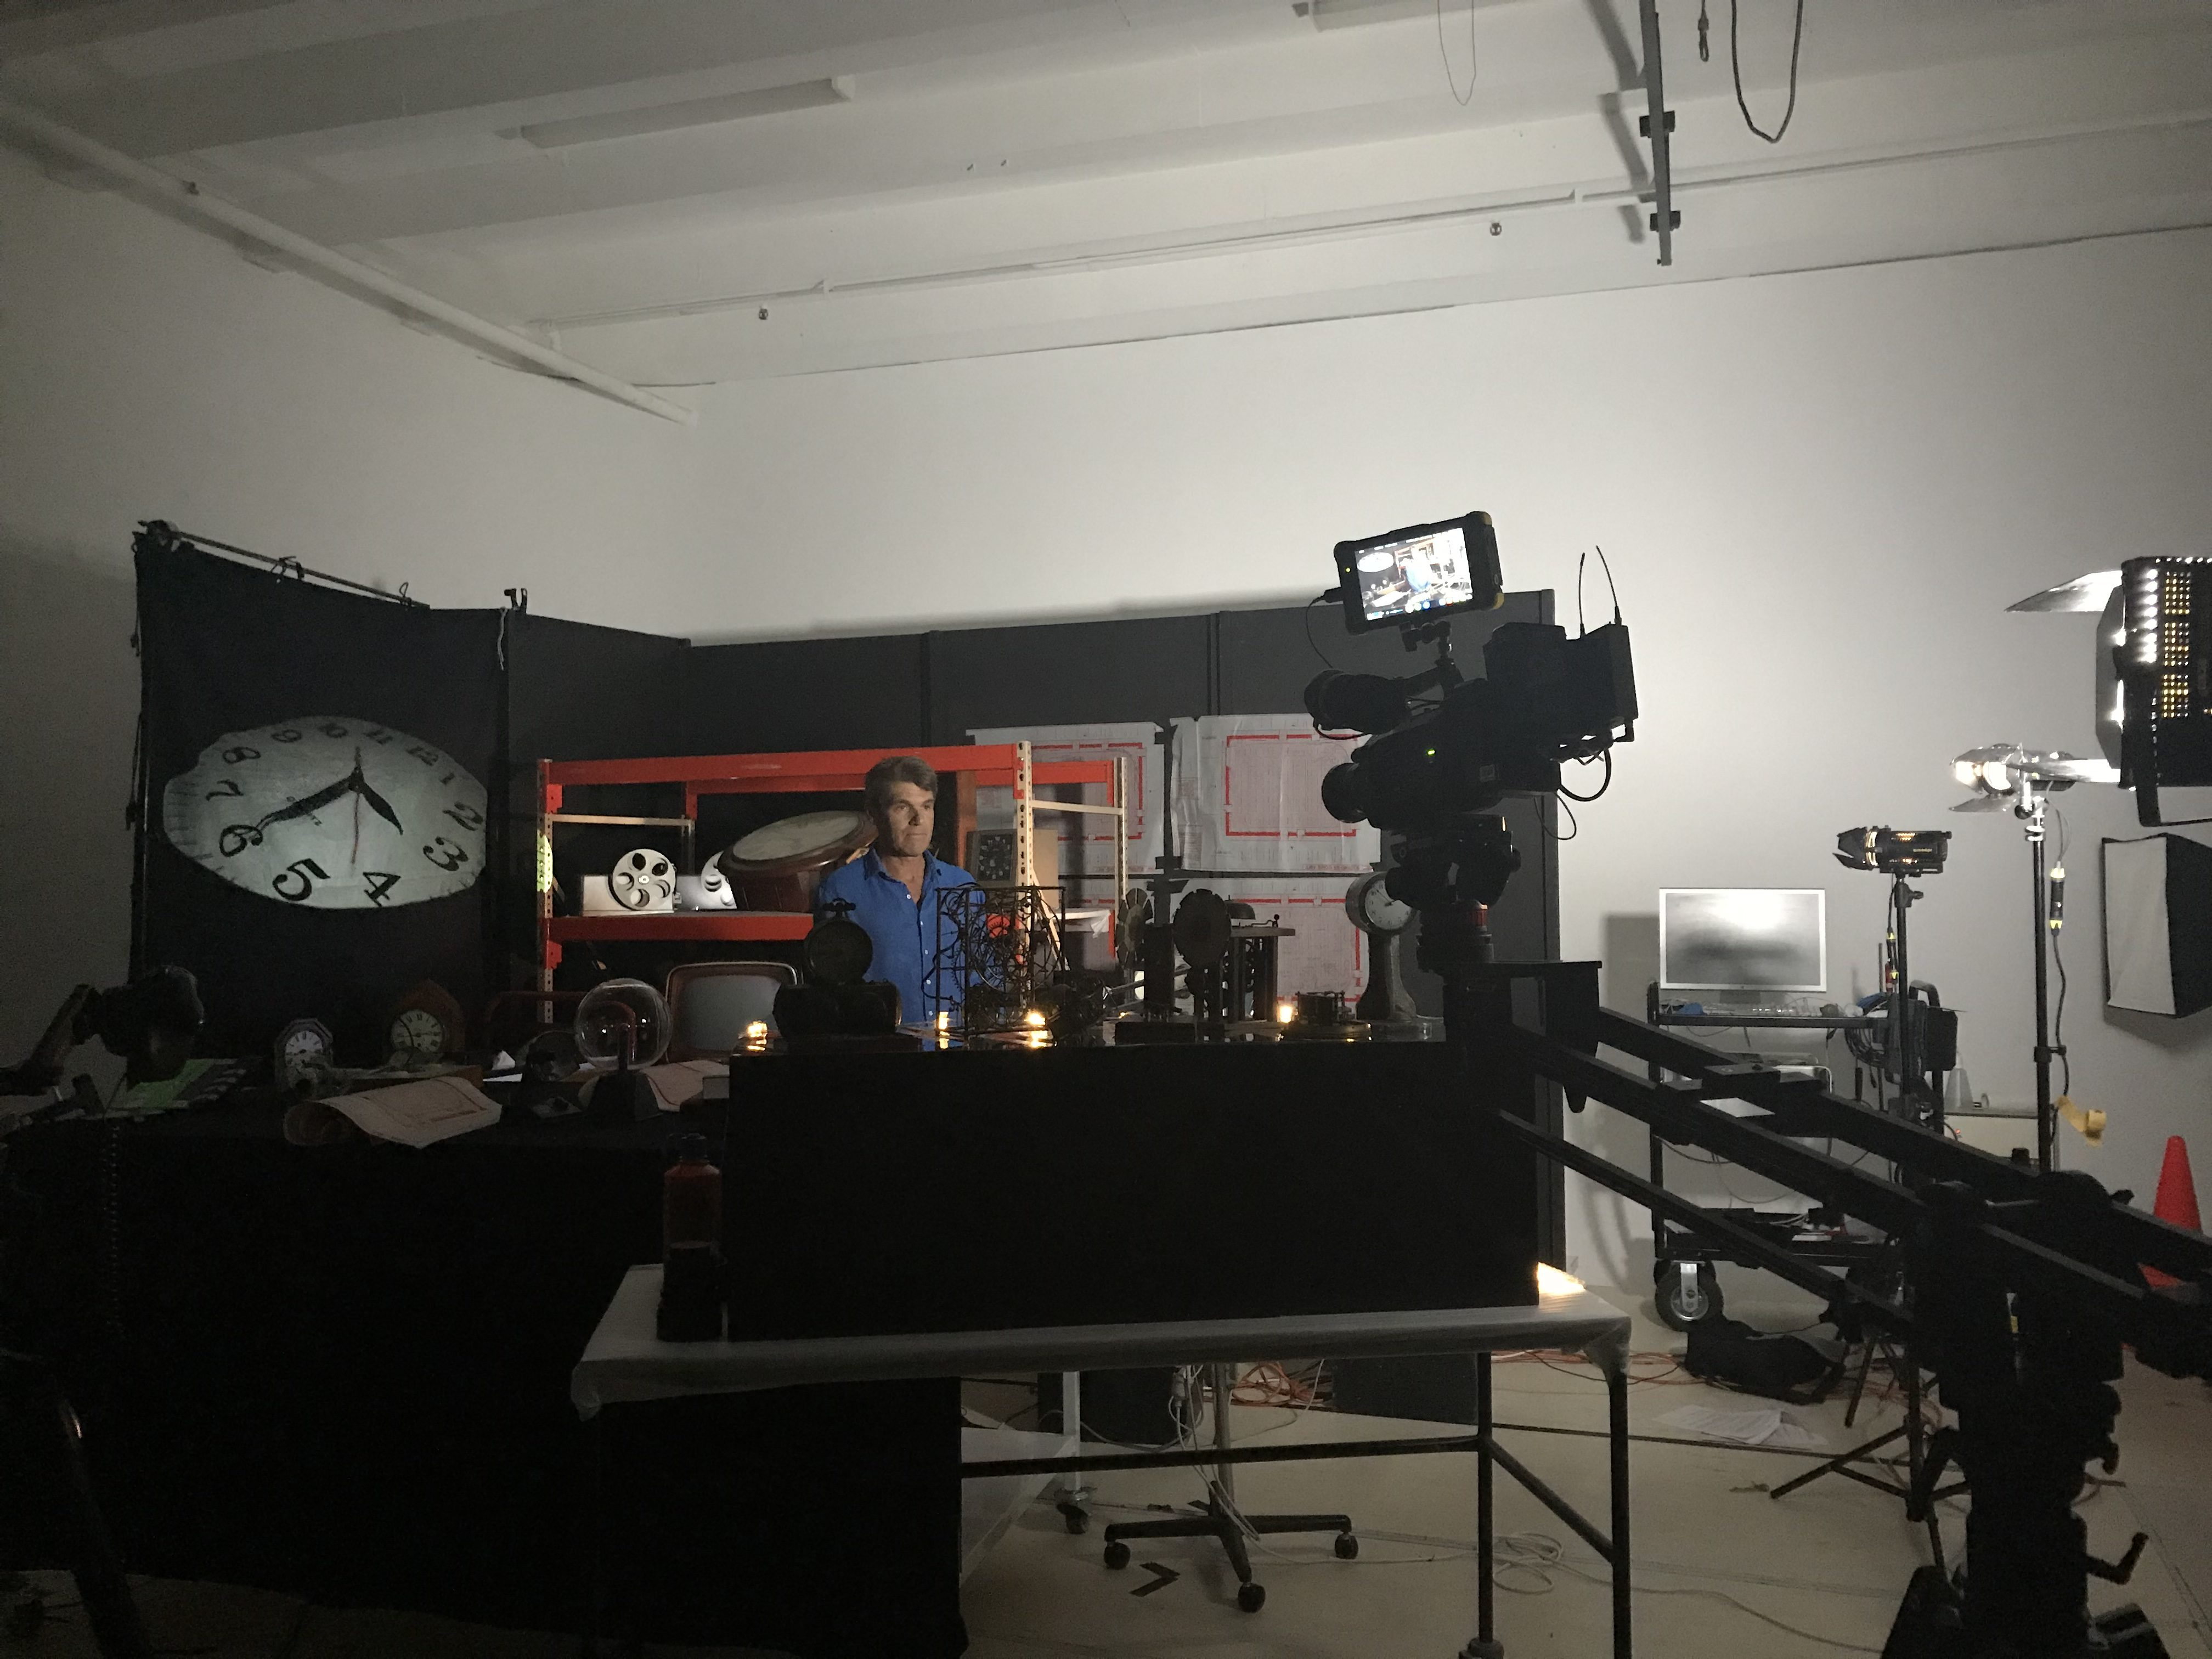 A man in a blue shirt during filming. In the foreground is a plinth of clocks and sciency objects. In the background is a set of industrial shelving with more Museum objects. A TV camera can be seen at the edge of the photo.